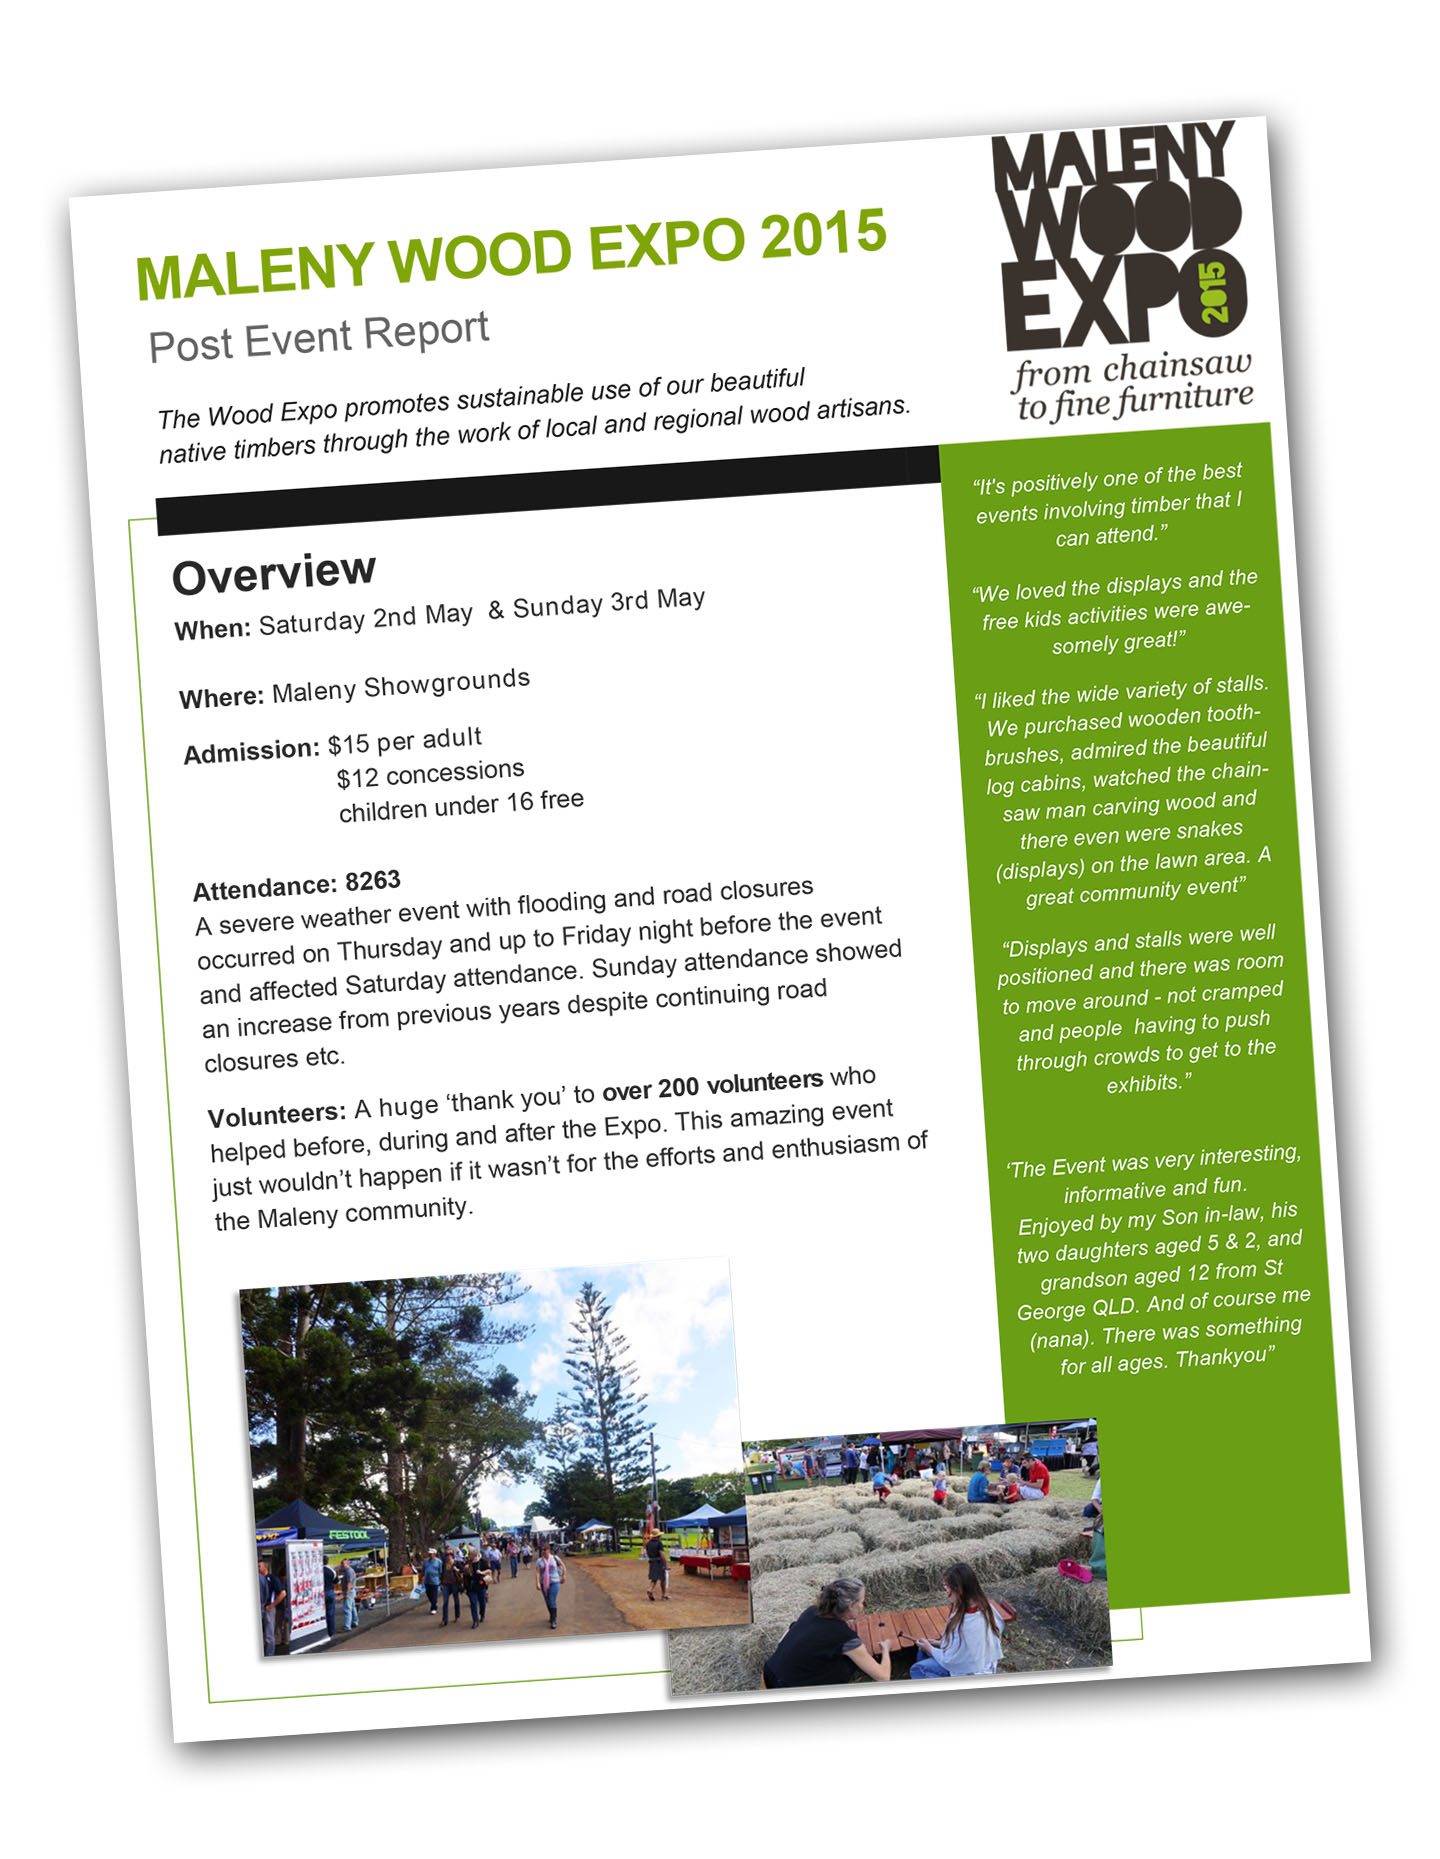 Maleny Wood Expo 2015  Post Event Report-TH.jpg